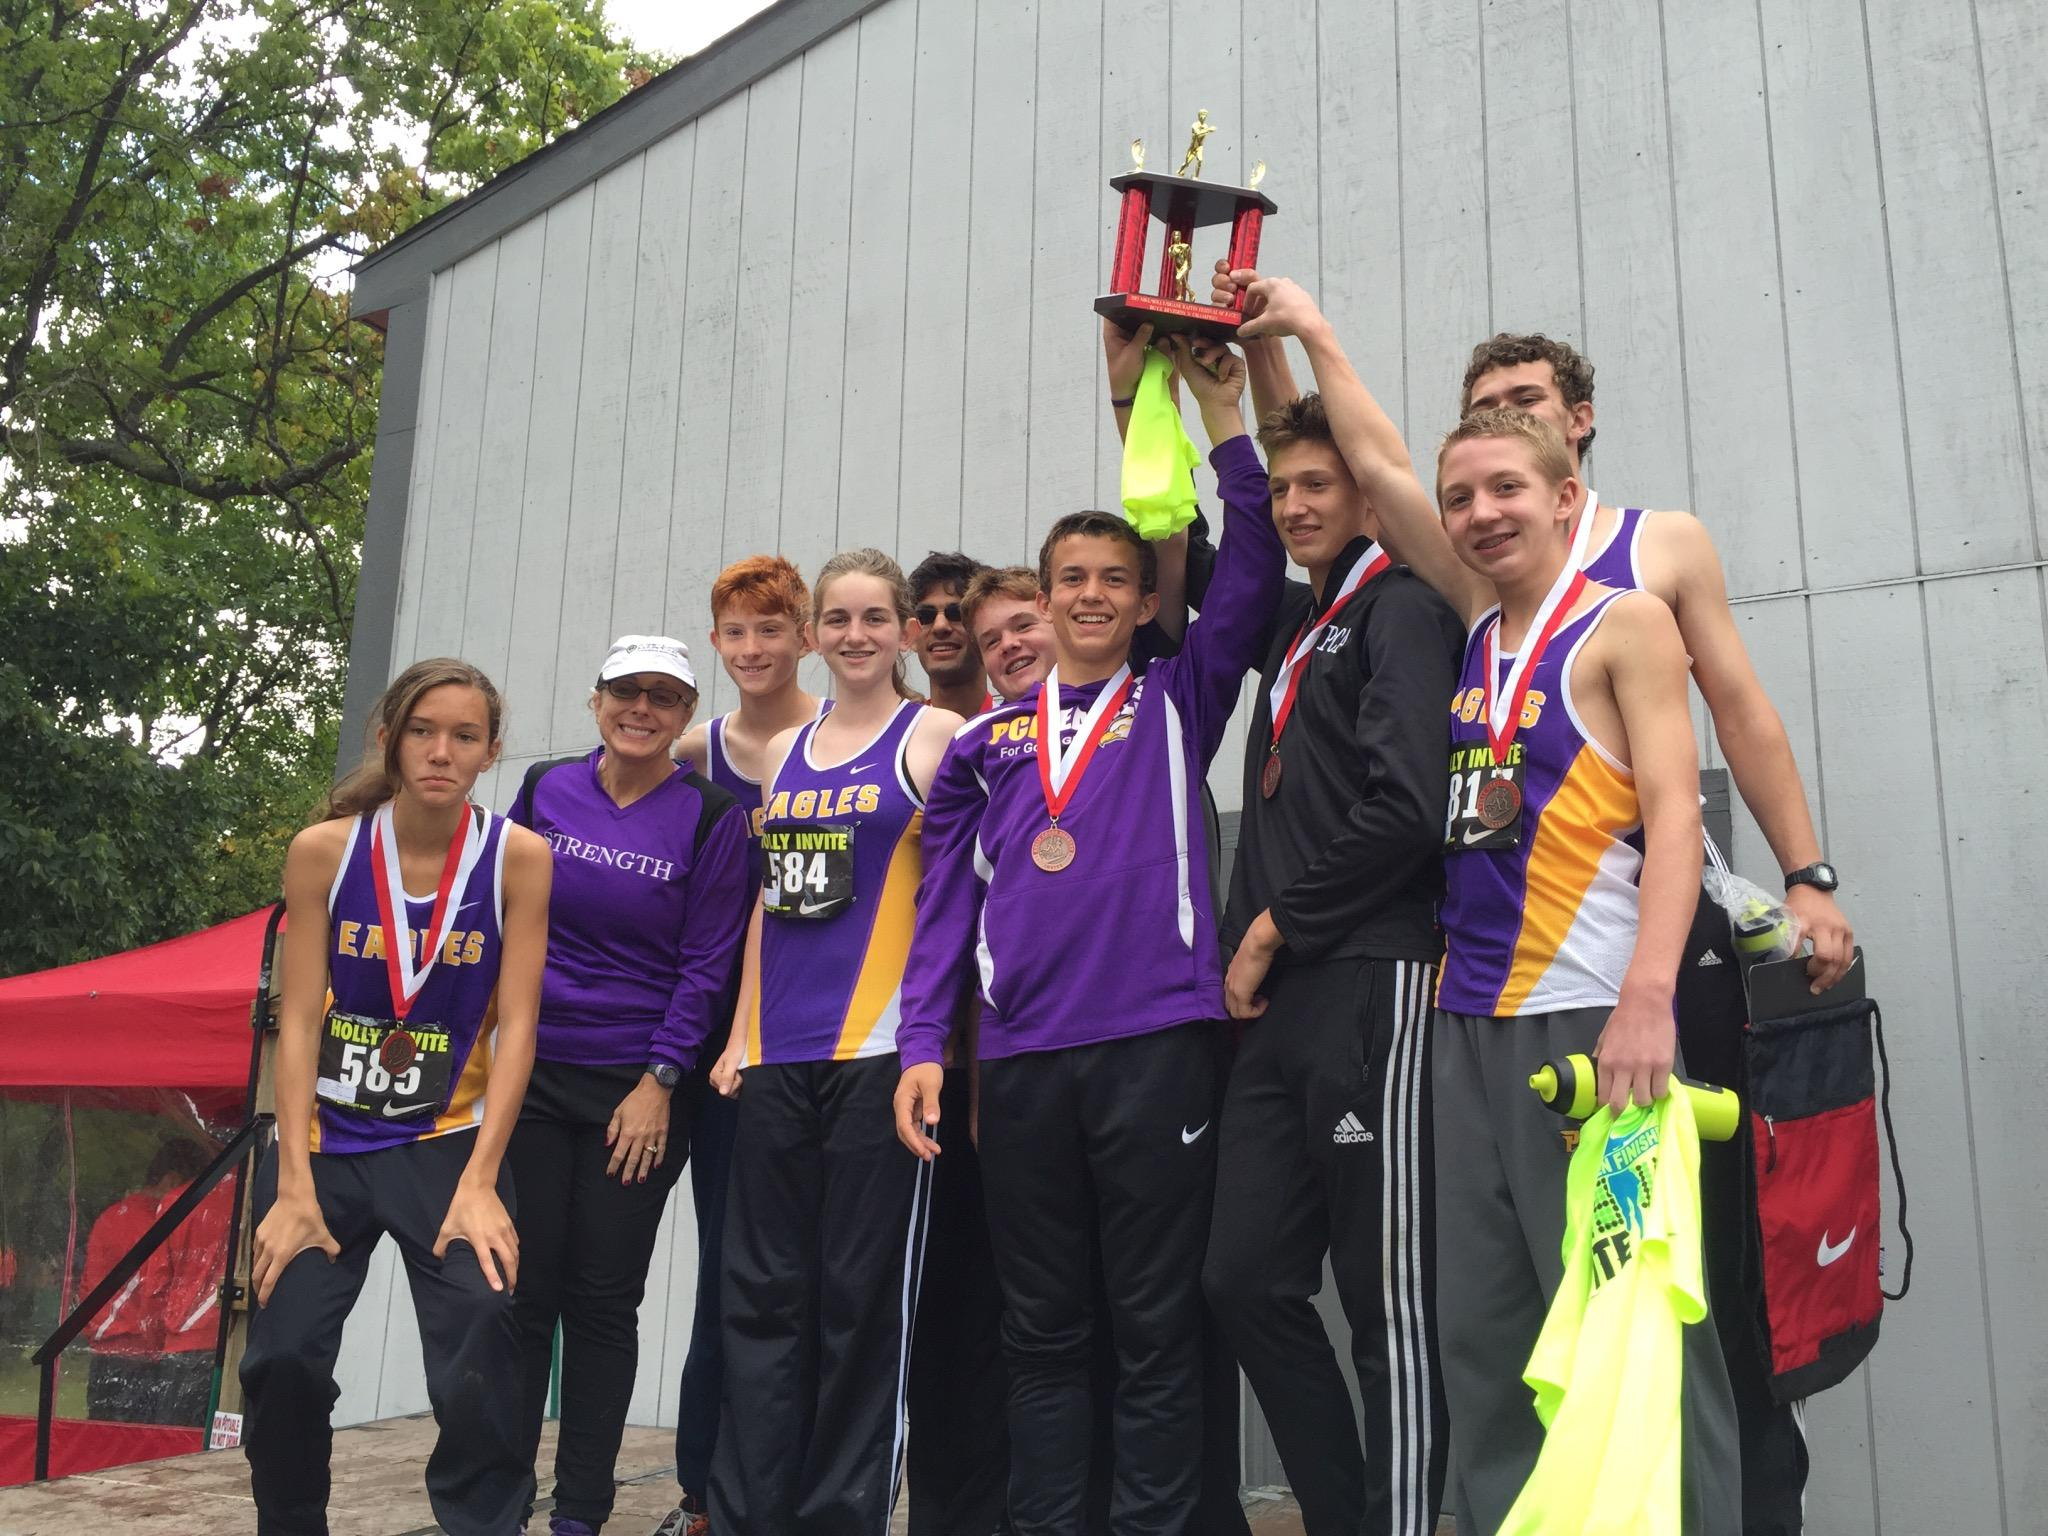 Plymouth Christian's cross country team and head coach Jennifer Lemieux celebrate winning the Nike/Holly invite.